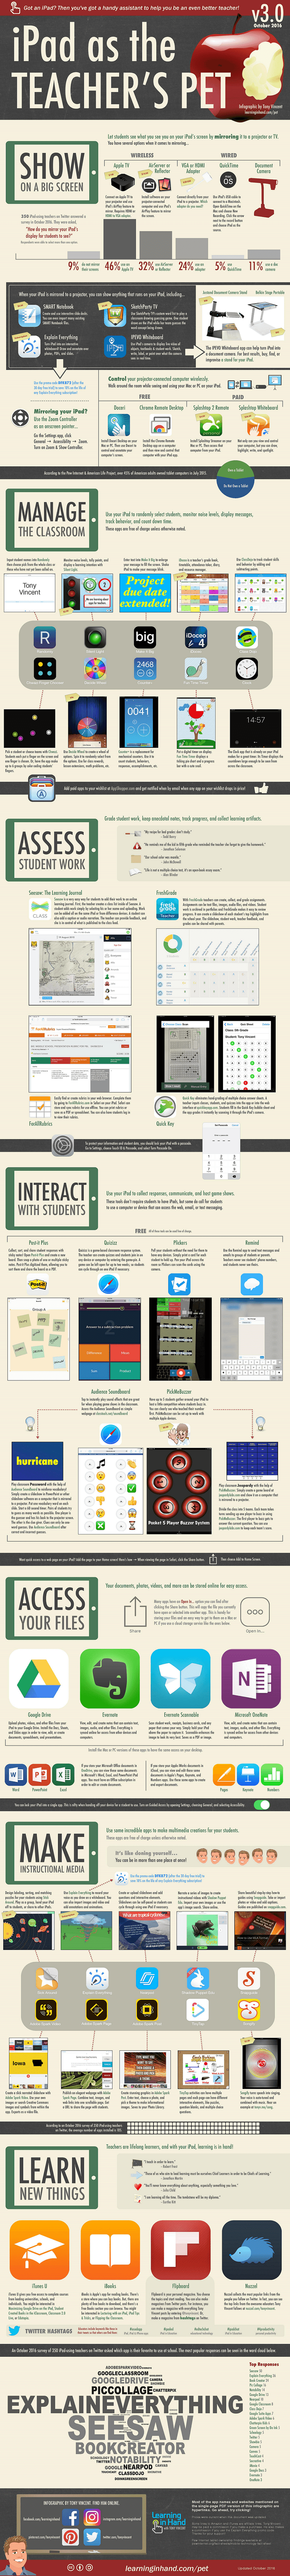 iPad as the Teacher's Pet in 2016 Infographic